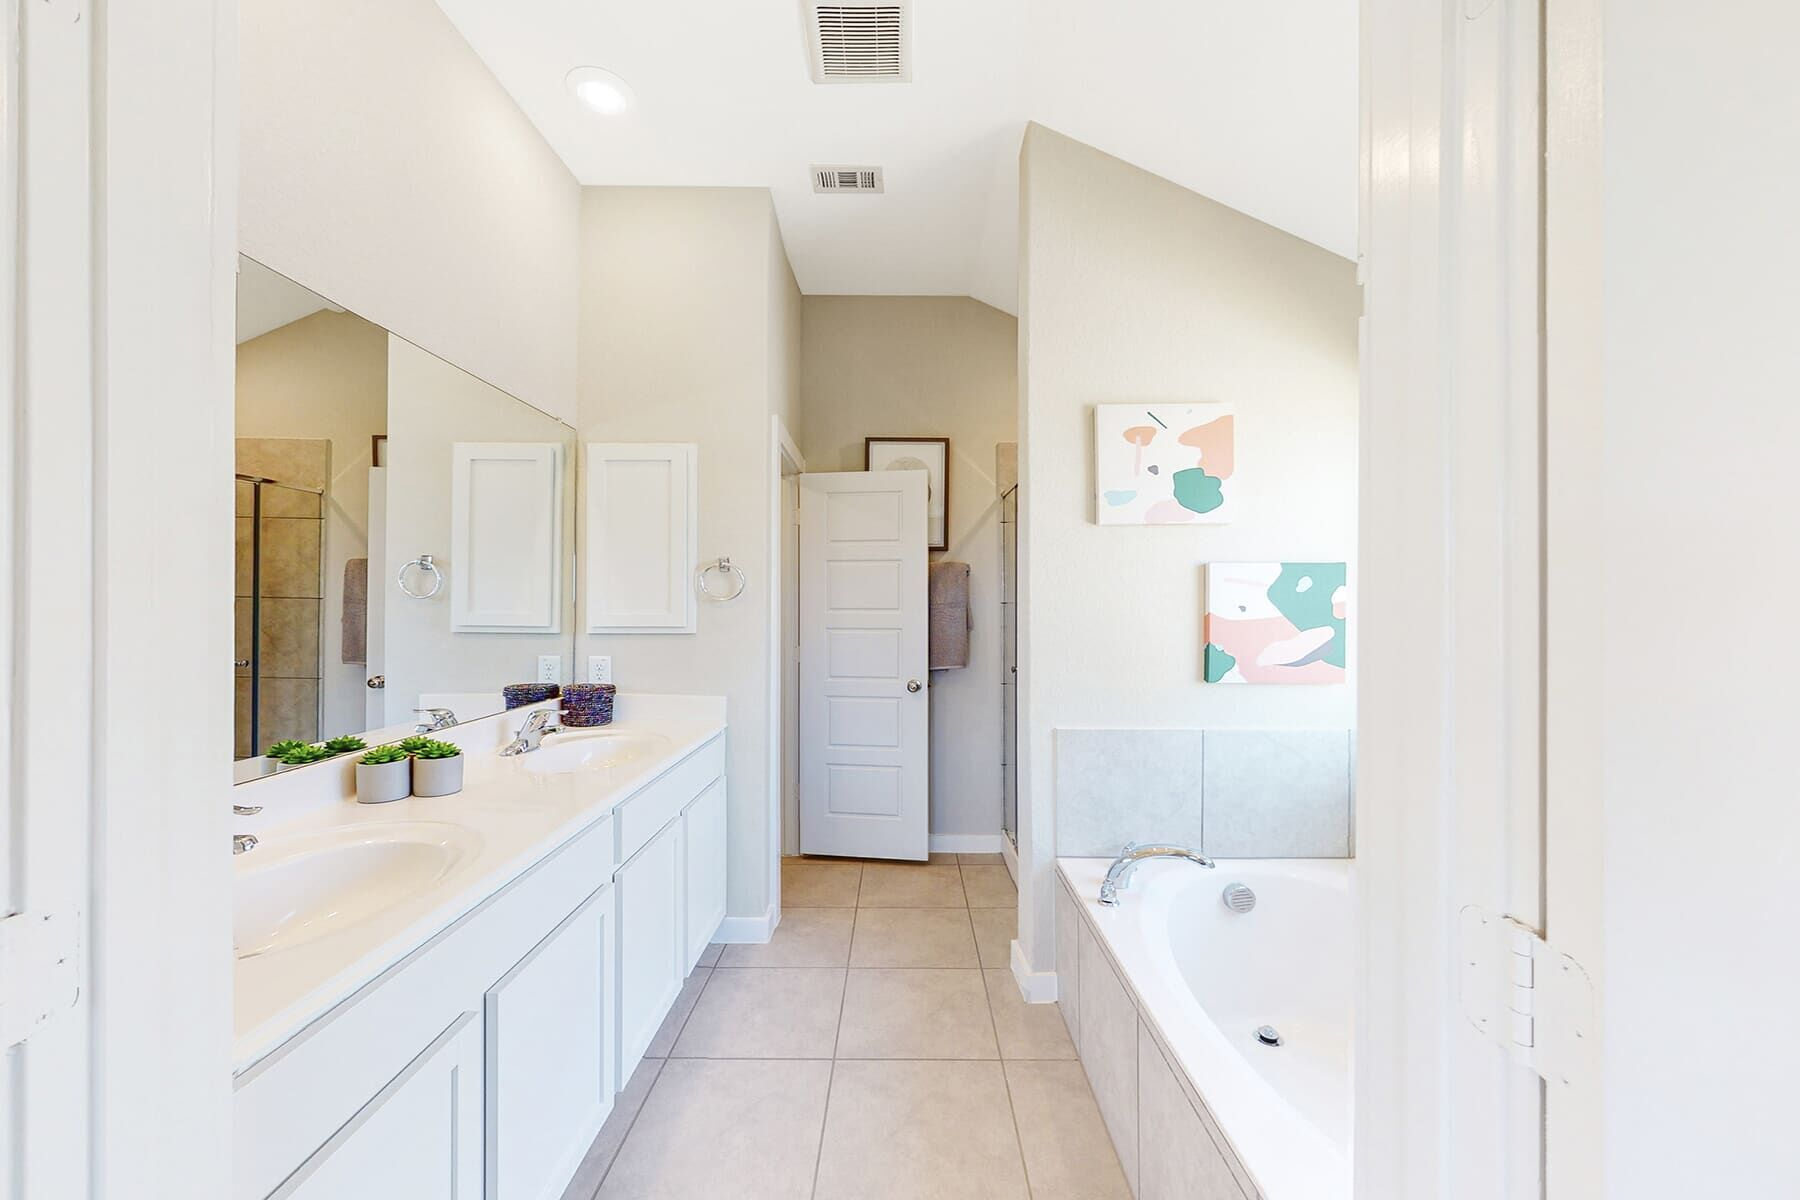 Bathroom featured in the Eastland By M/I Homes in San Antonio, TX